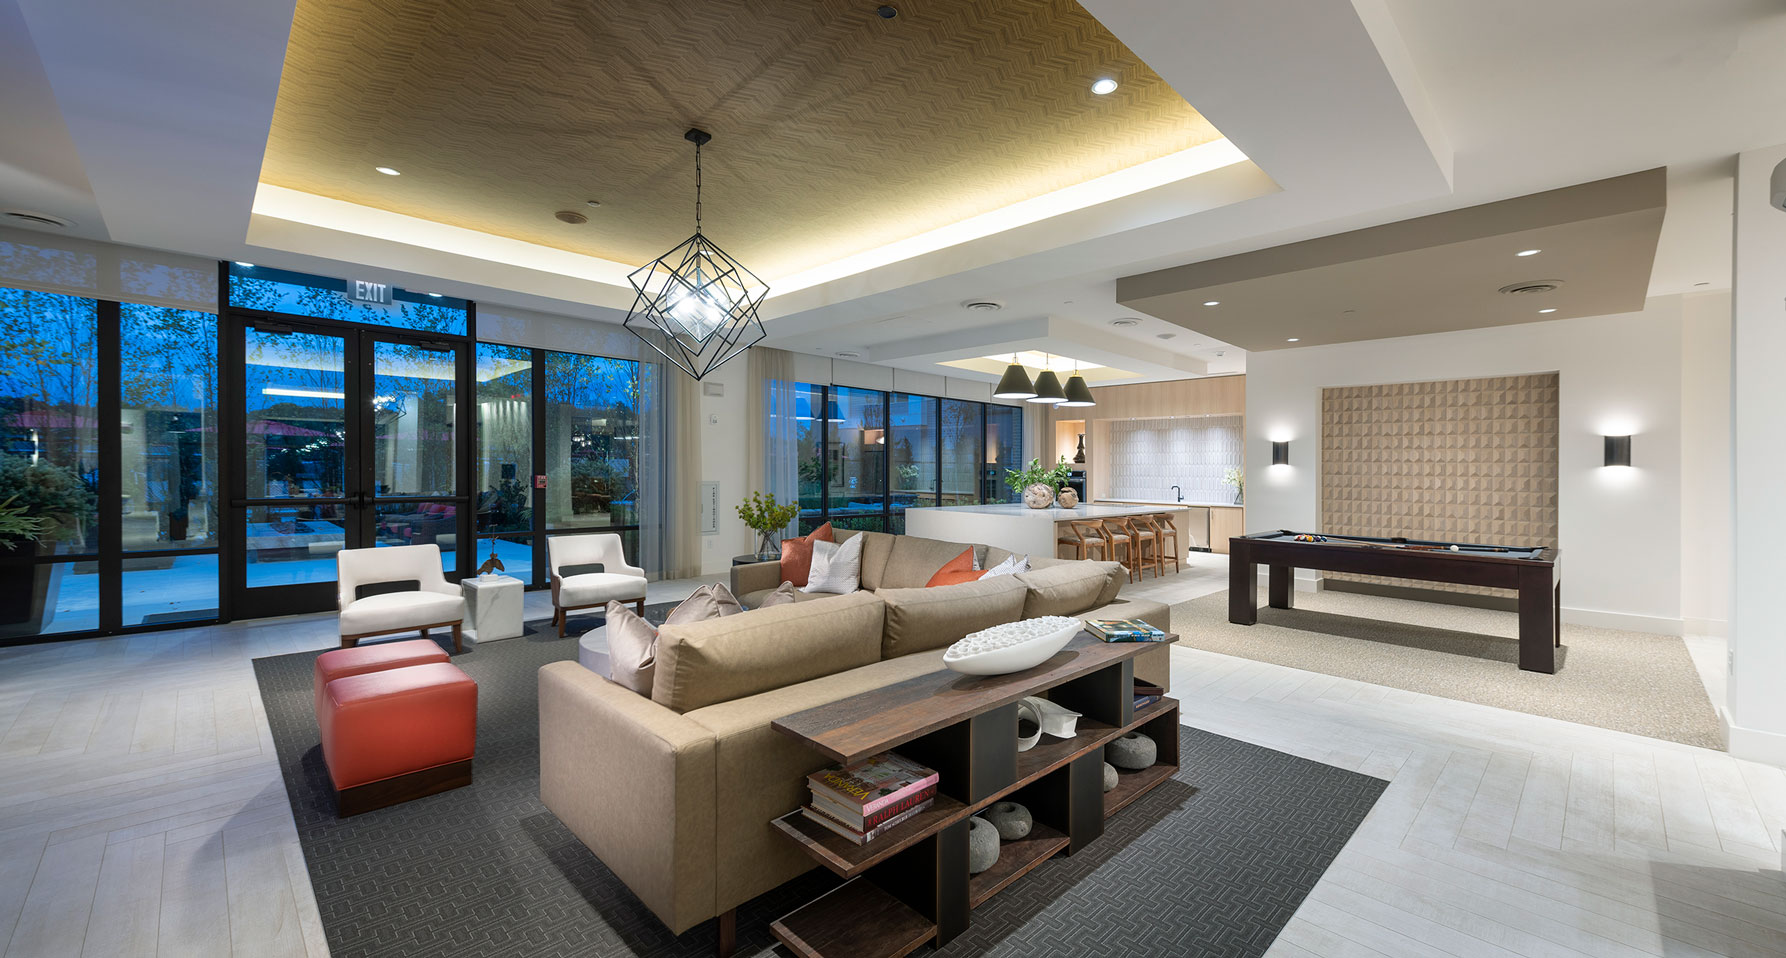 Clubhouse with variety of seating, pool table, kitchen and designer lighting